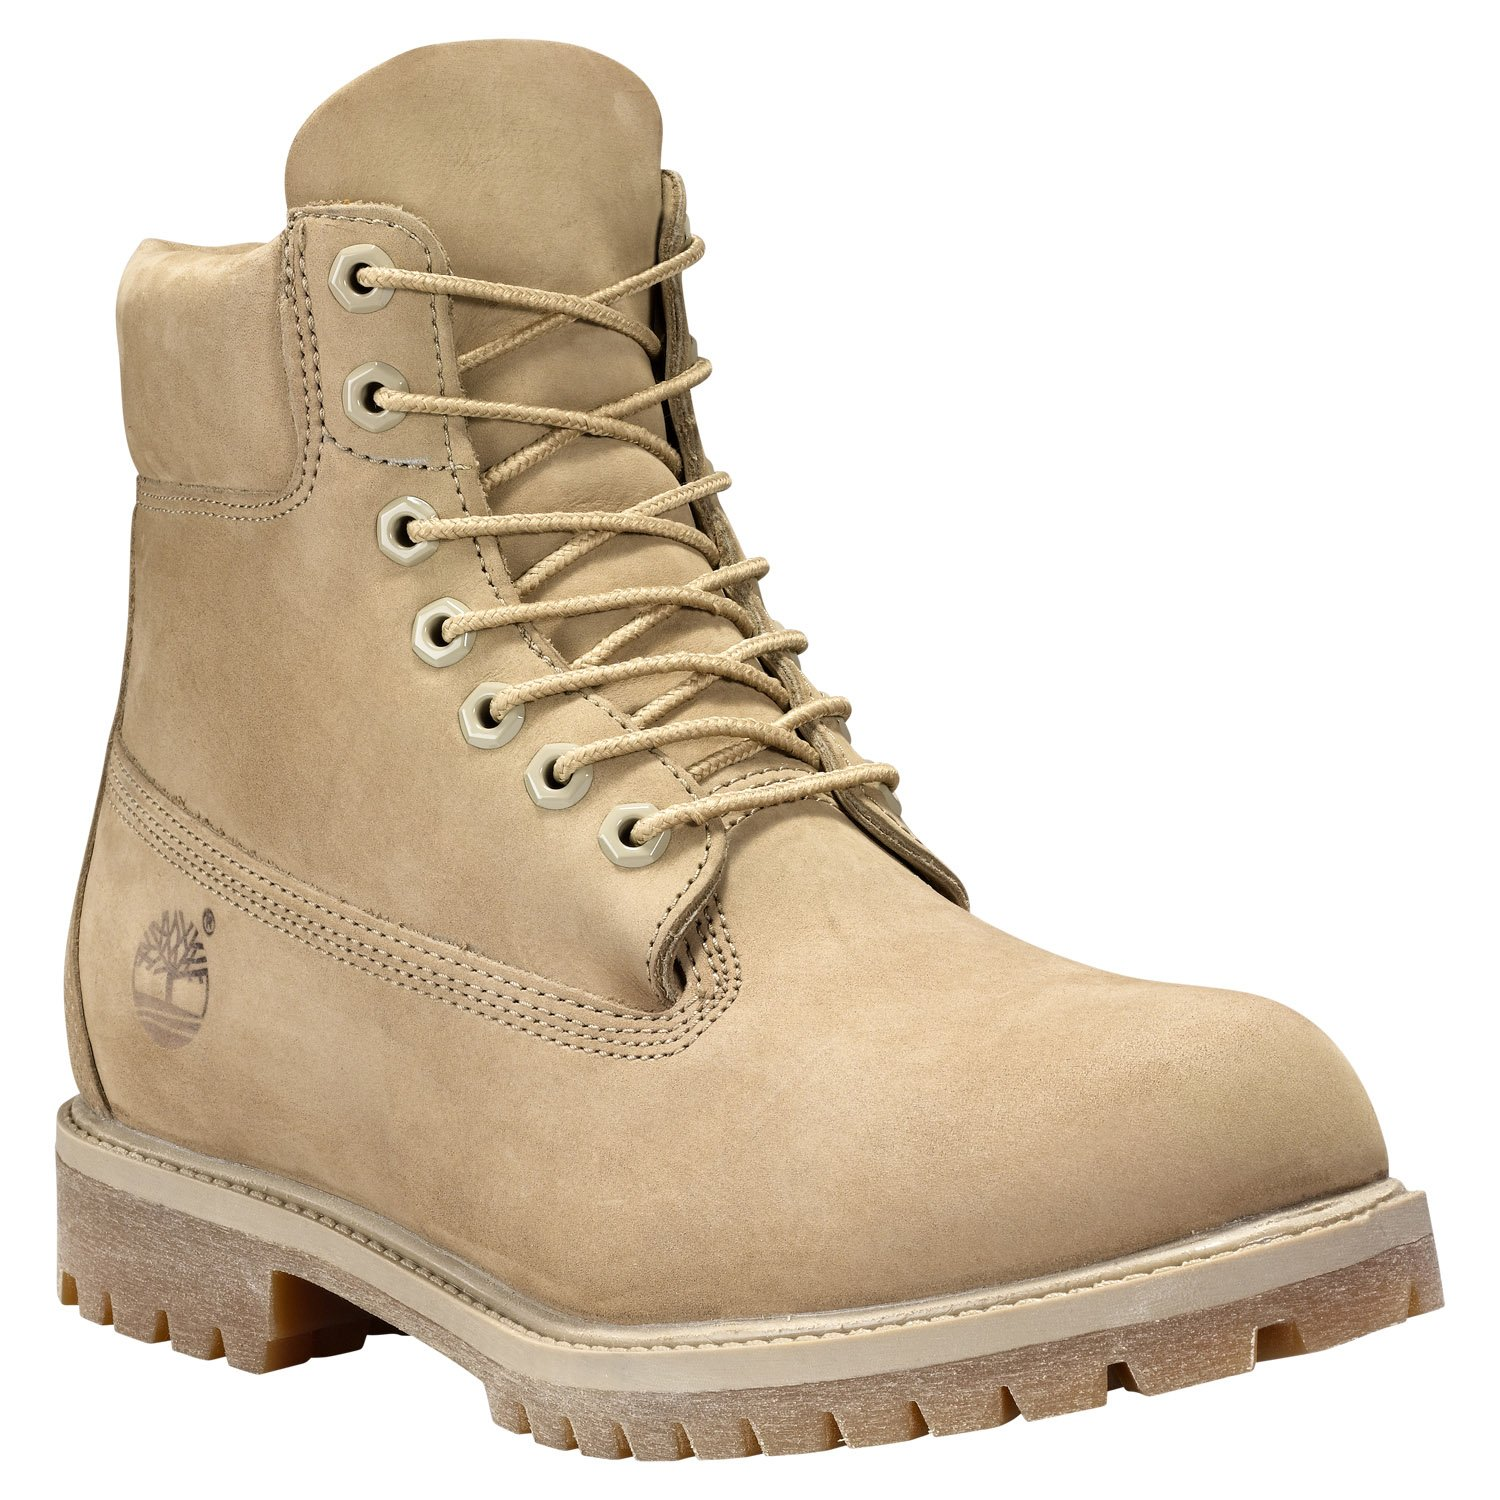 Timberland Men's 6'' Premium Monochrome Boot (11 D(M) US, Tan) by Timberland (Image #1)